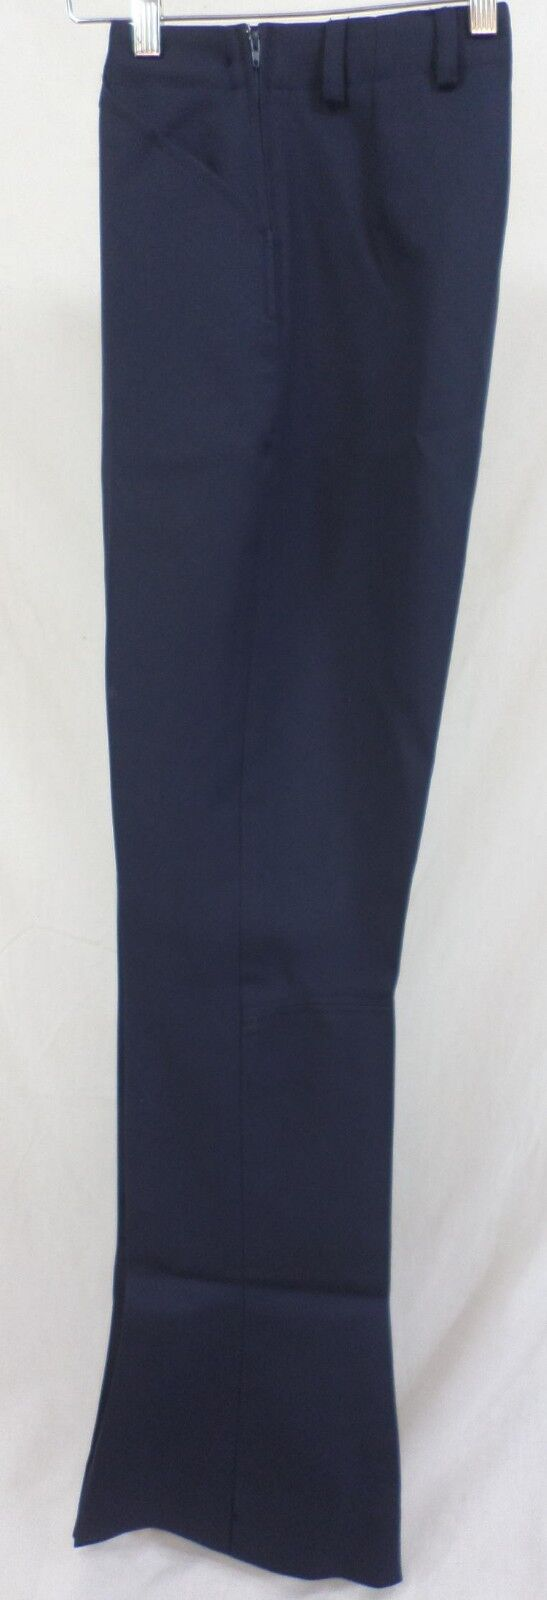 Reed Hill Ladies  Saddleseat Jod Pant Navy Polyester 8   24  waist Regular -USA  fast delivery